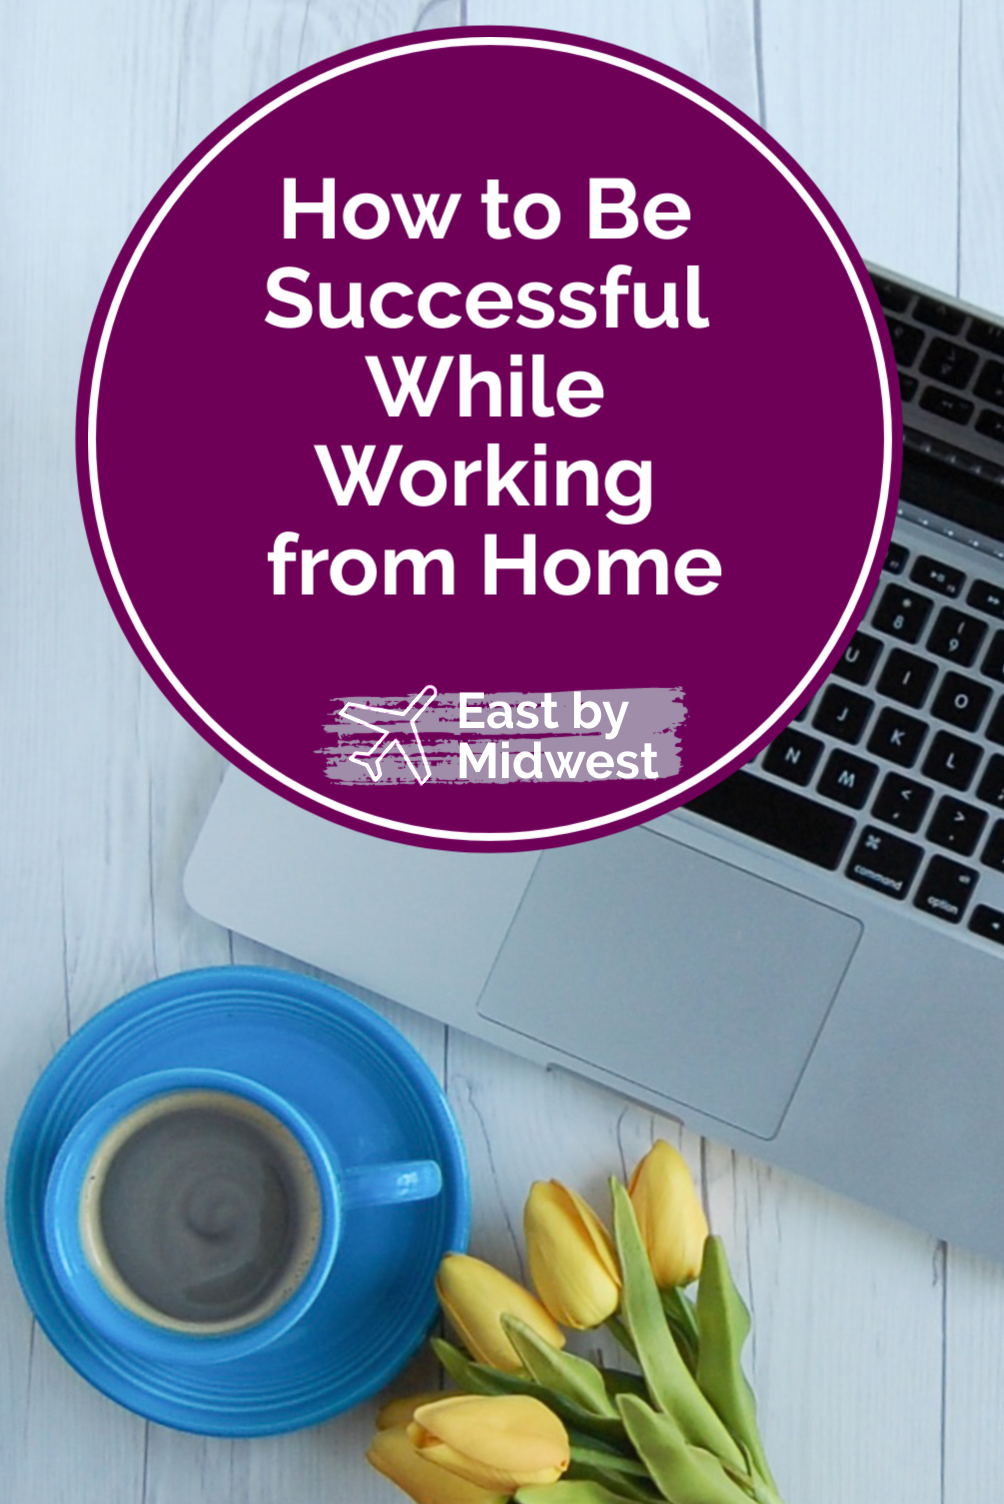 How to Be Successful While Working from Home